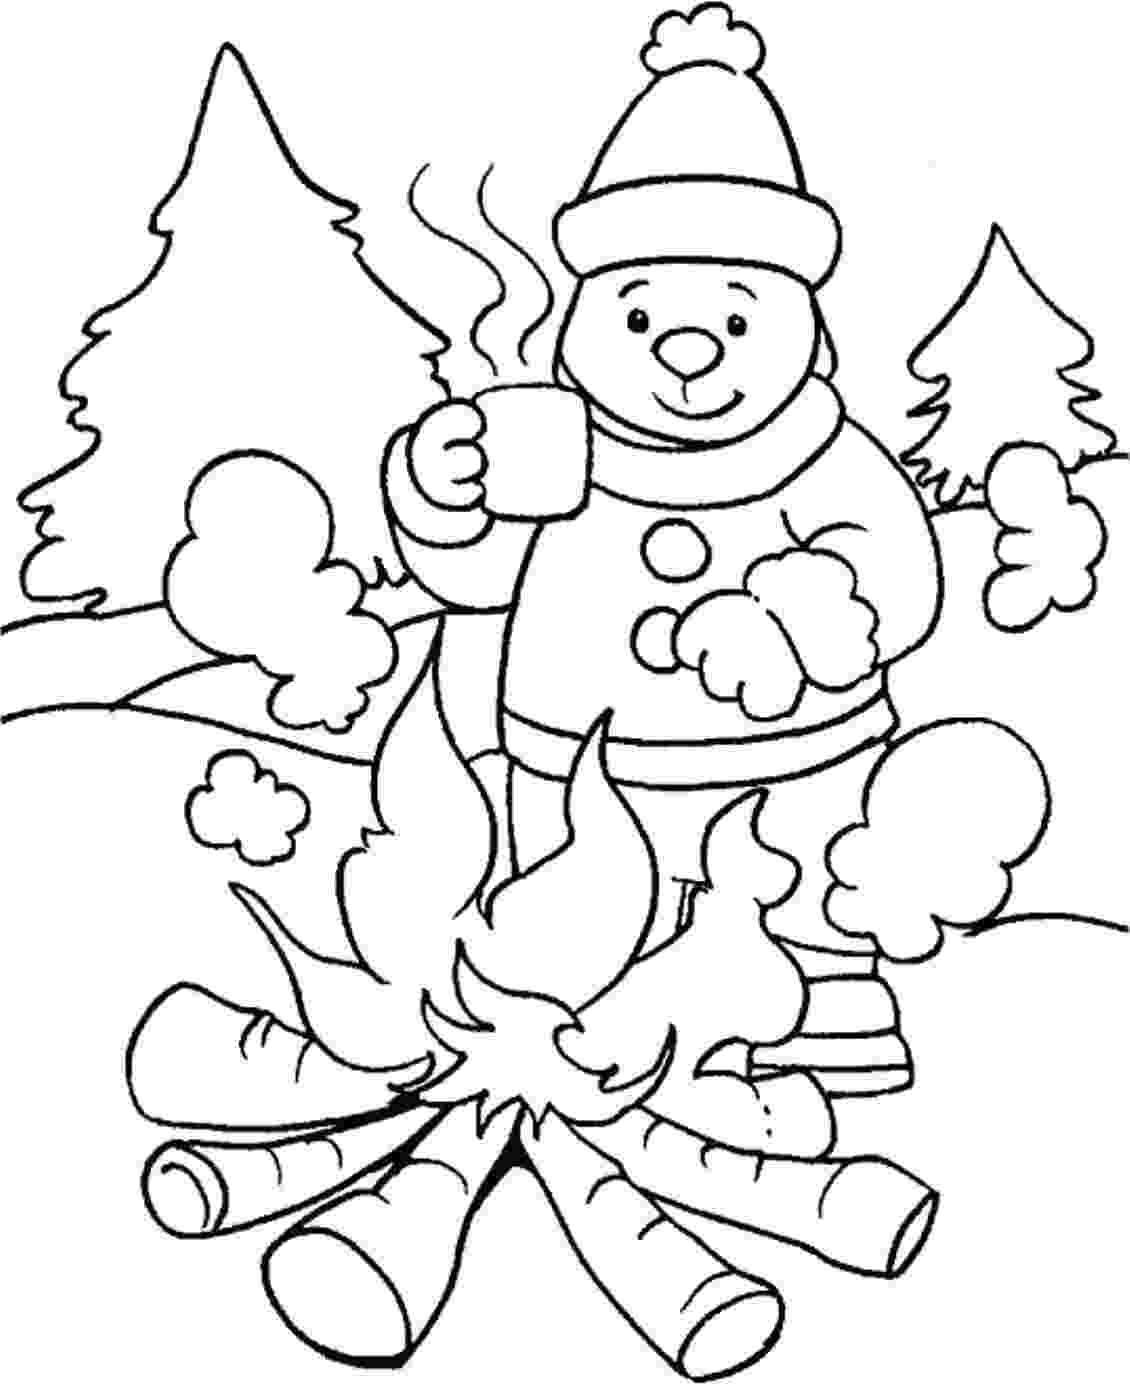 free winter coloring pages printable free printable winter coloring pages pages printable winter free coloring